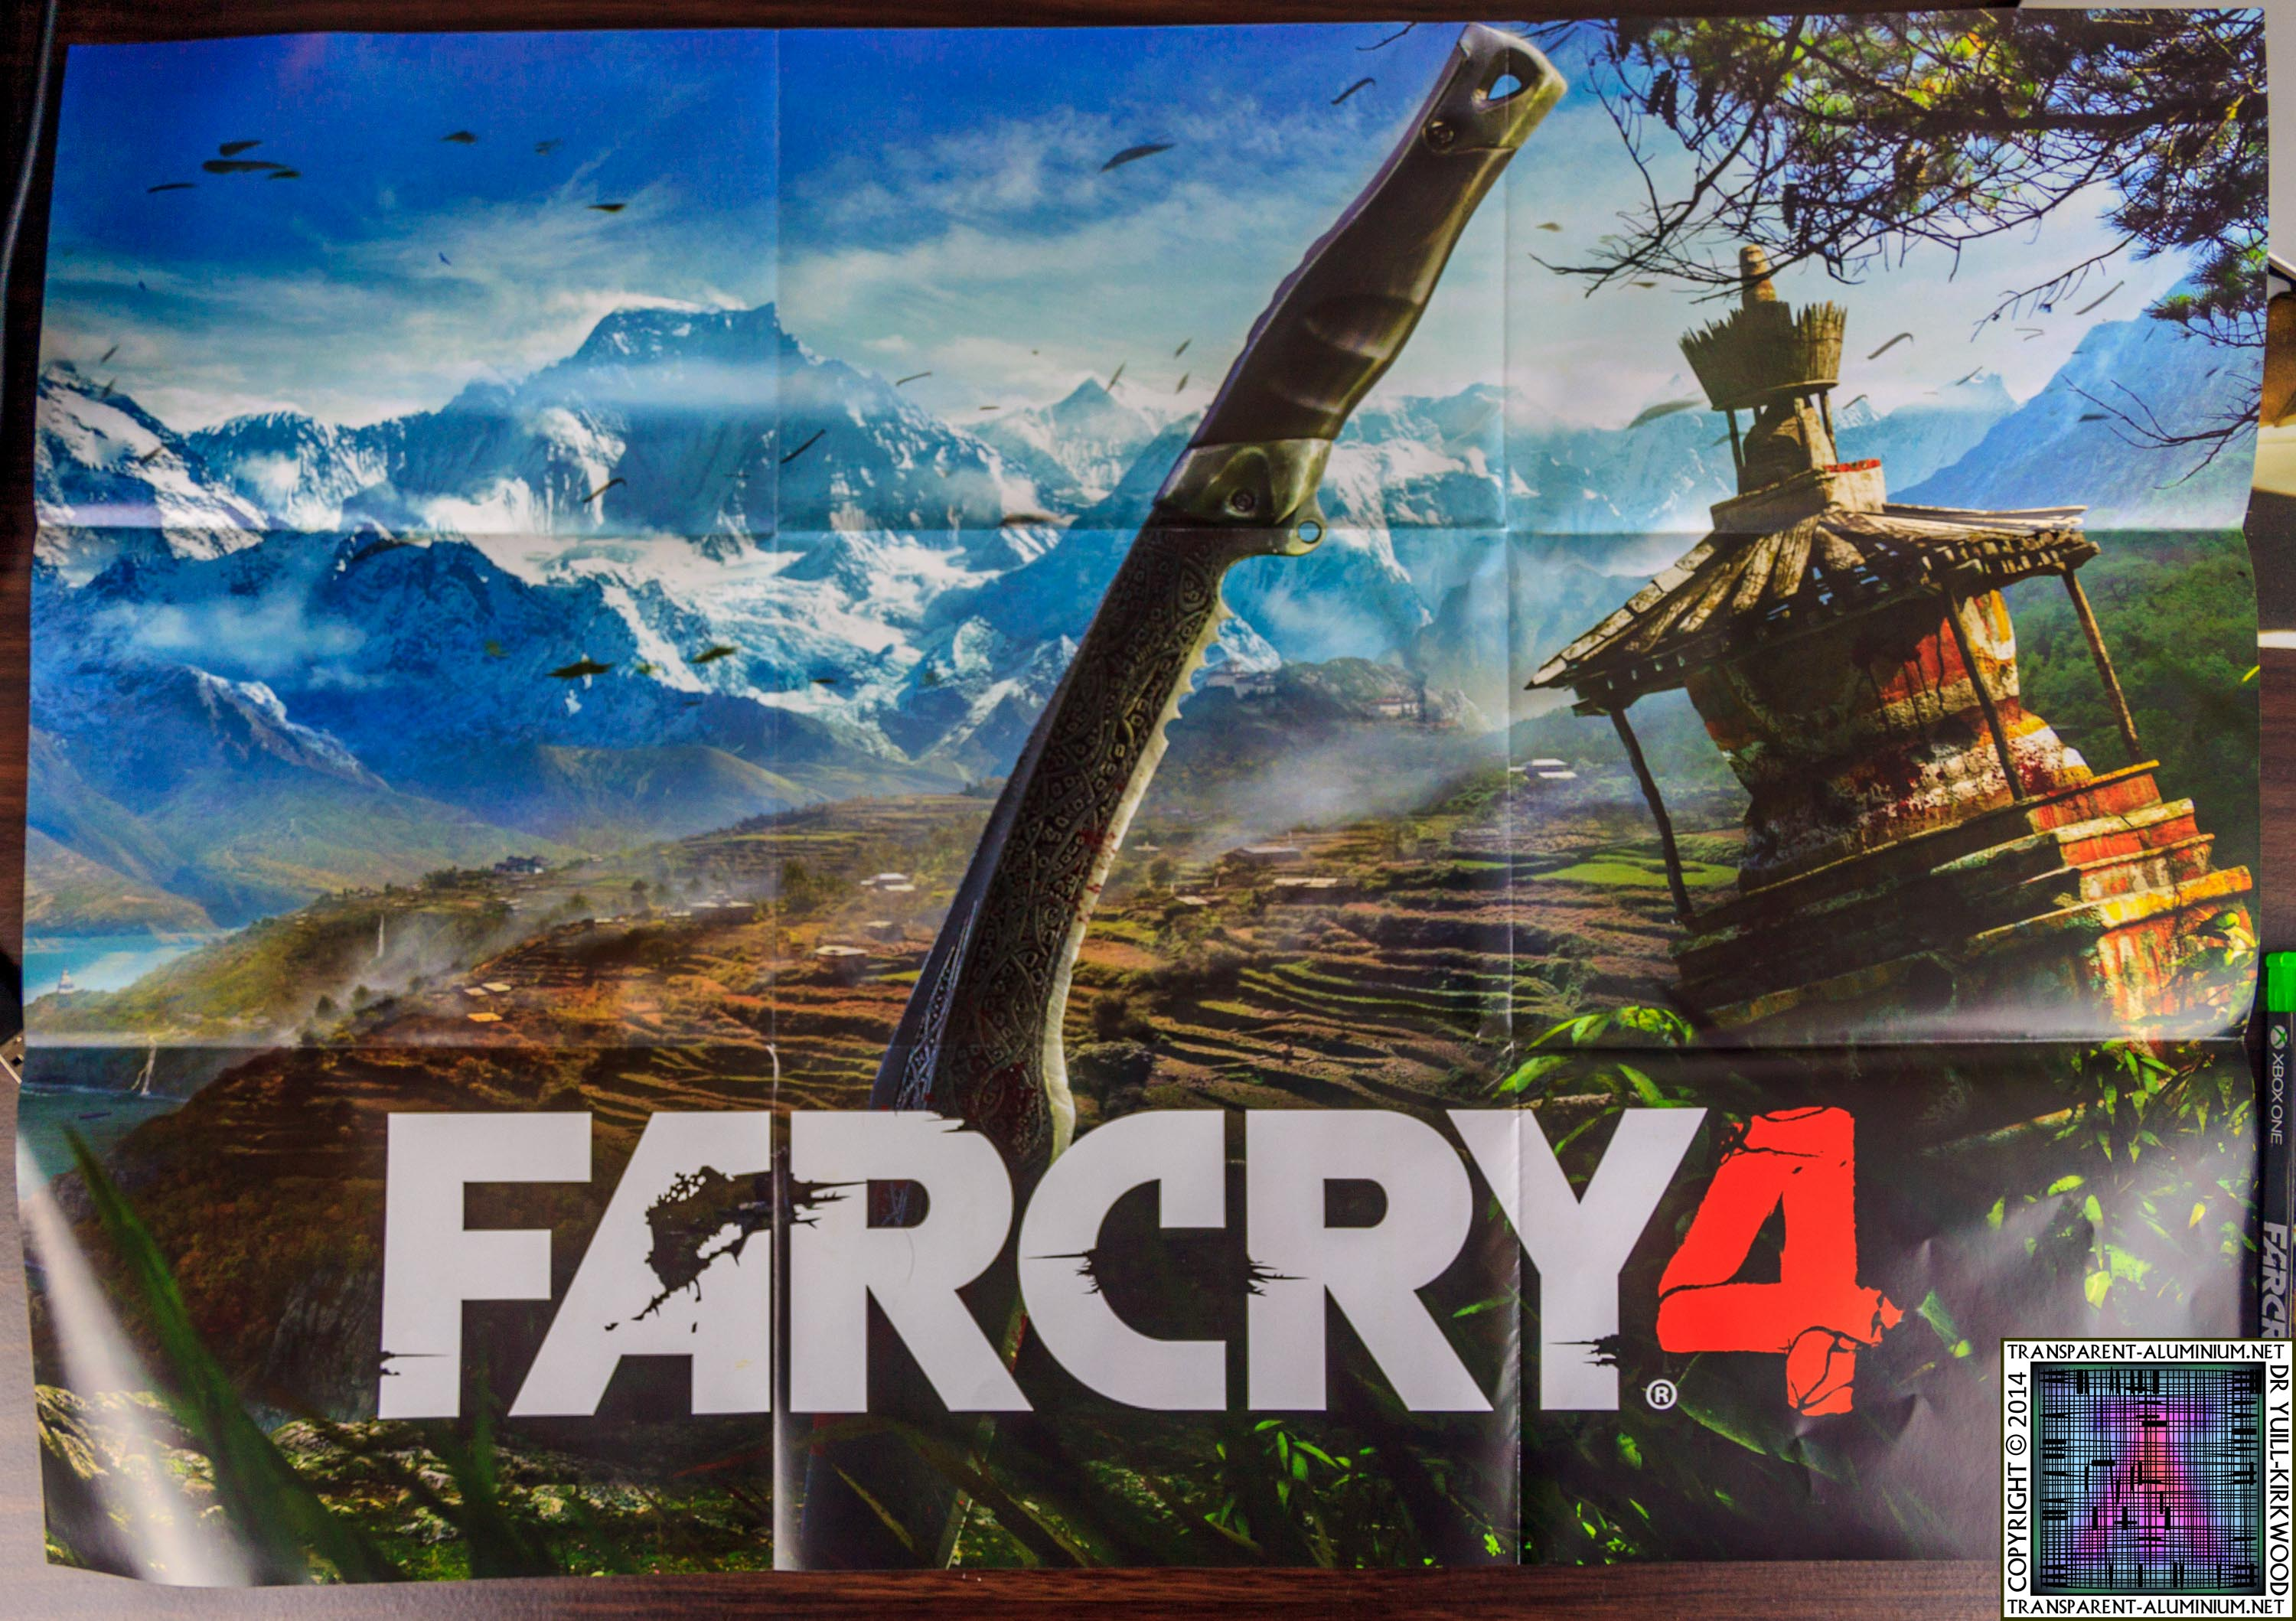 Far-Cry-4-Poster-1